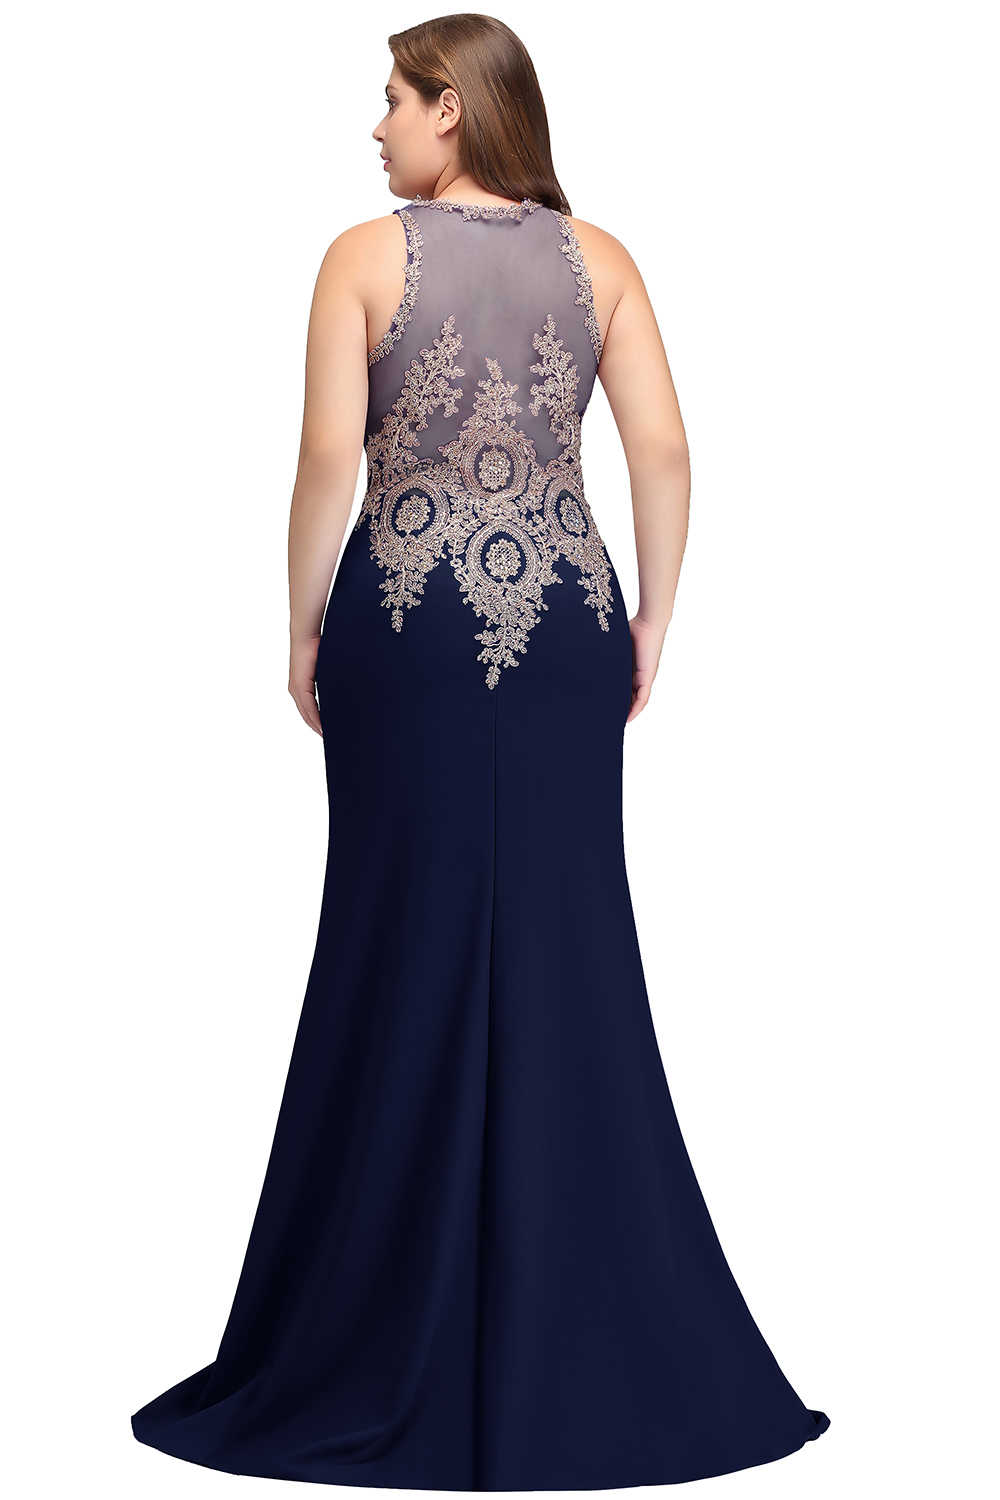 Mother Of The Bride Dresses Plus Size Satin Dress Elegant Sleeveless Applique Long Mermaid Evening Dress Mother Bride Gown Aliexpress,Mother Of The Groom Dresses For Summer Outdoor Wedding Canada